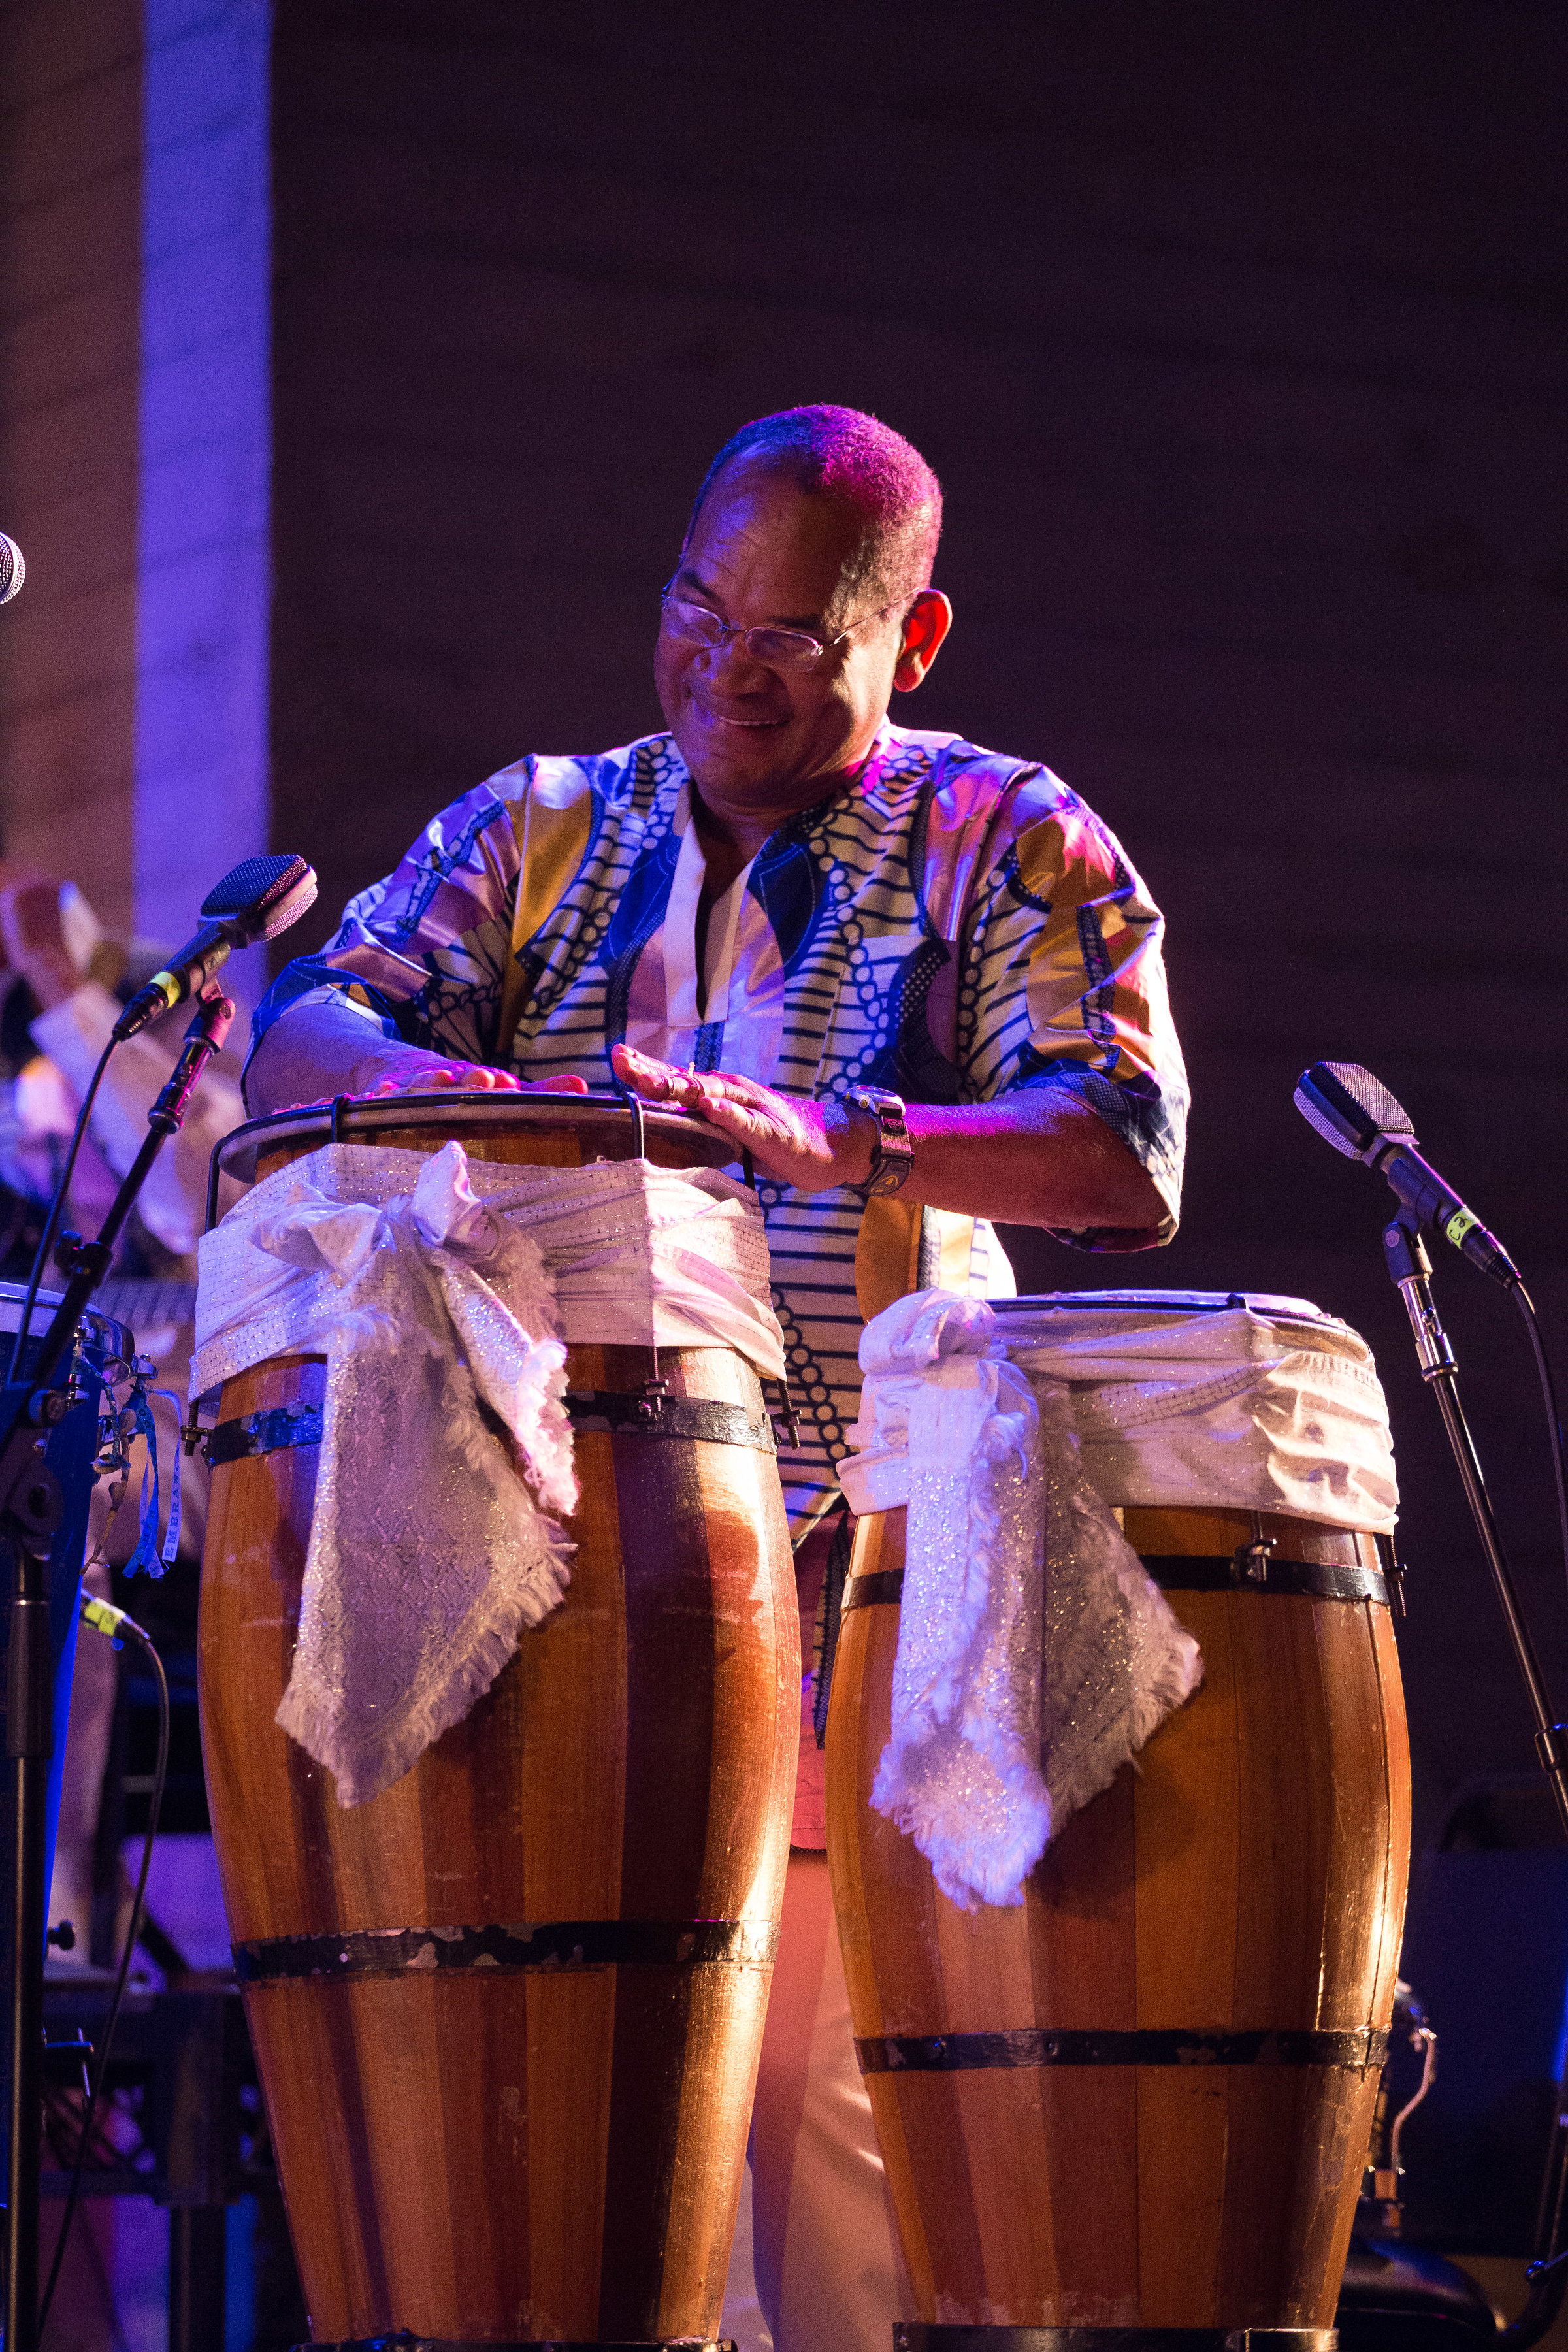 Luiz Badaró, Viver Brasil's Artistic Director - Badaró is a native son of Bahia with over thirty years teaching Afro-Brazilian dance, choreographing and playing percussion. His choreographies exalt the intense love he has for his culture and its preservation and development.